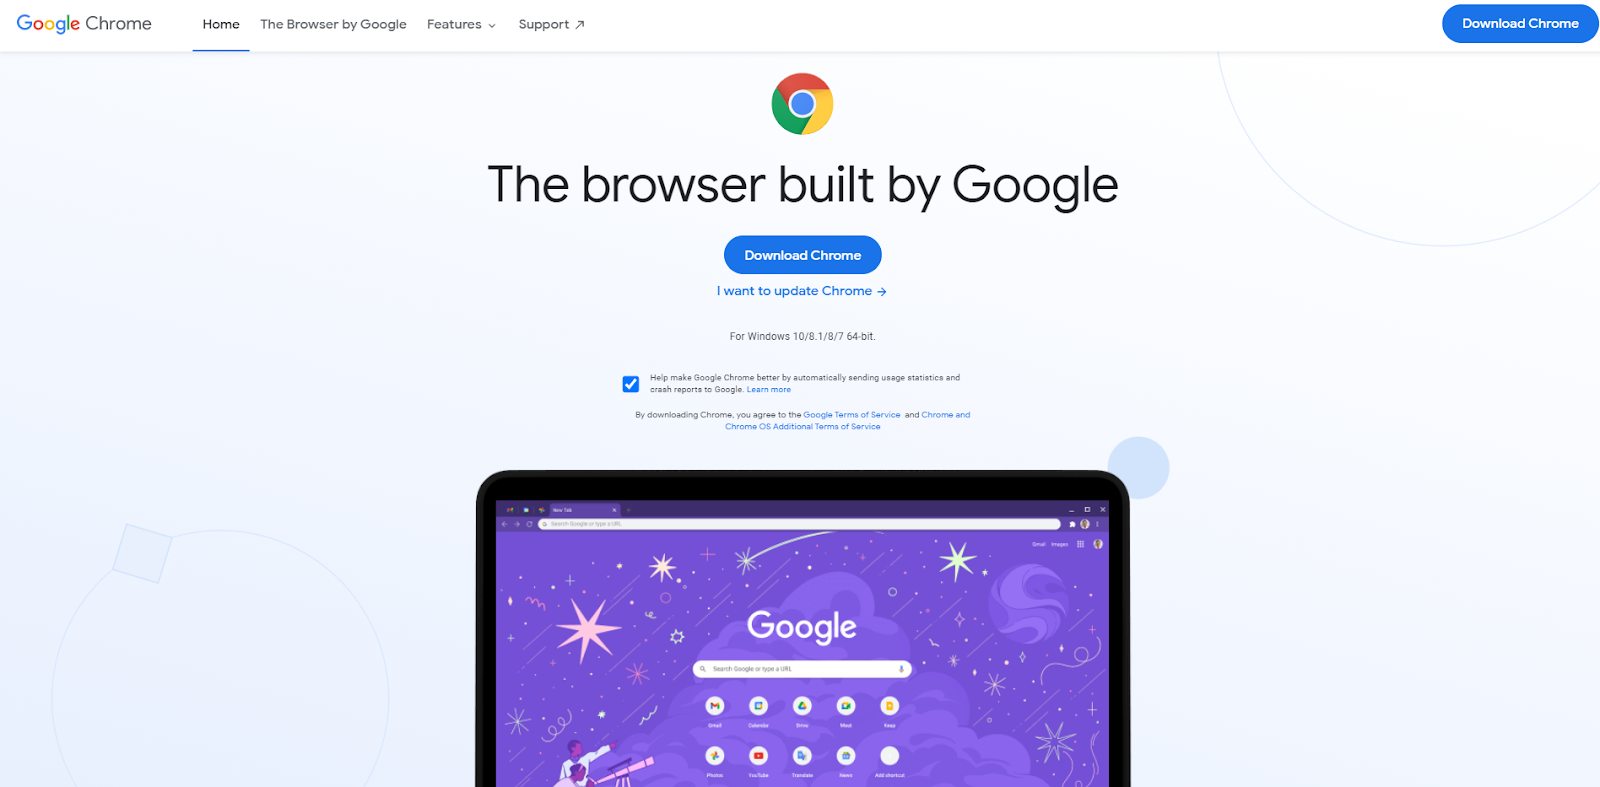 Google Chrome official Download Page